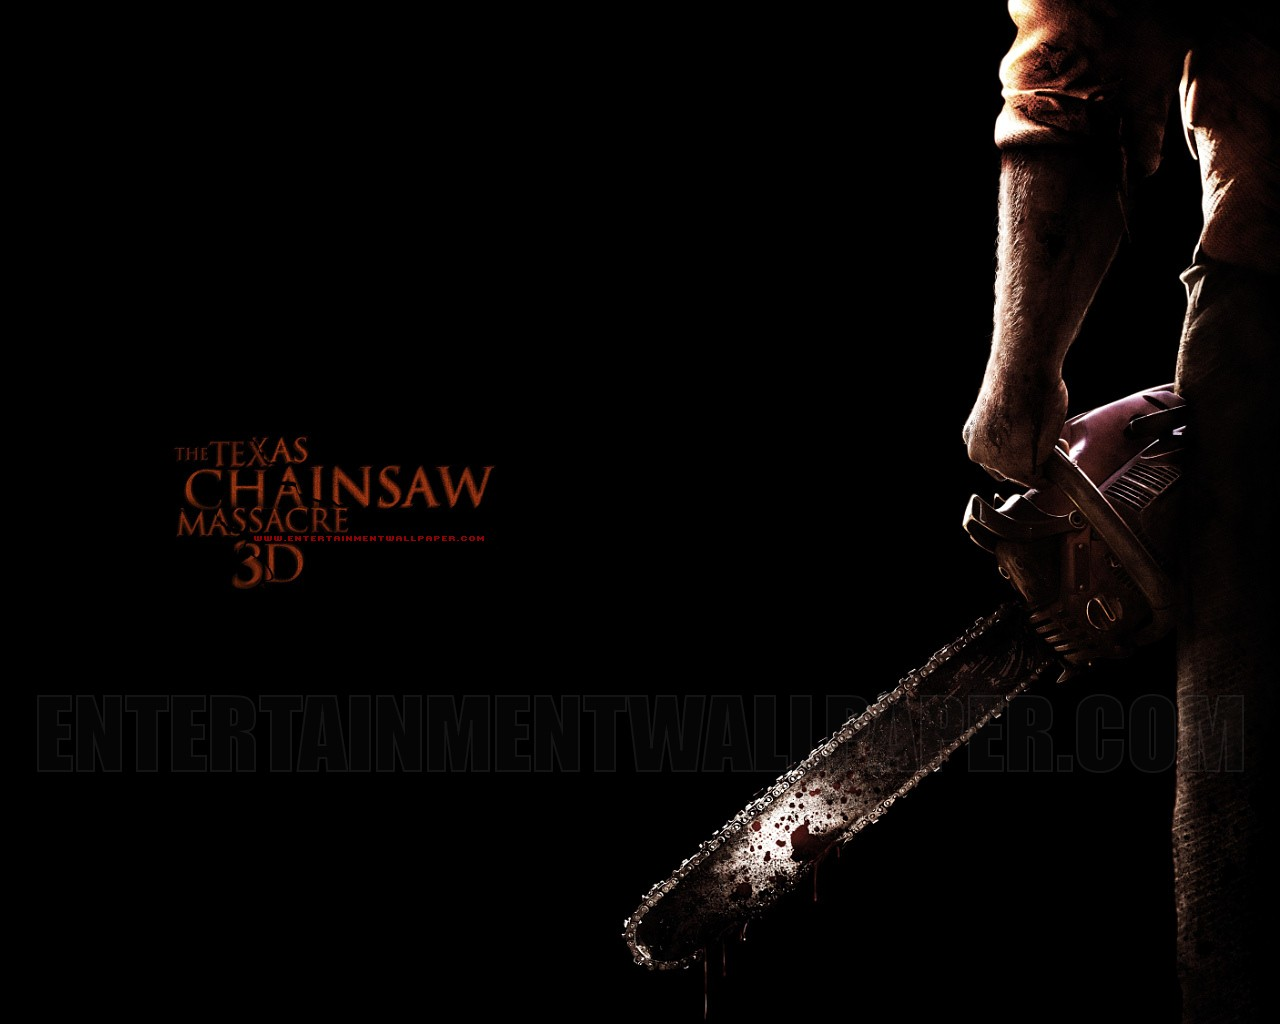 films dhorreur images Texas Chainsaw 3D HD fond dcran and 1280x1024